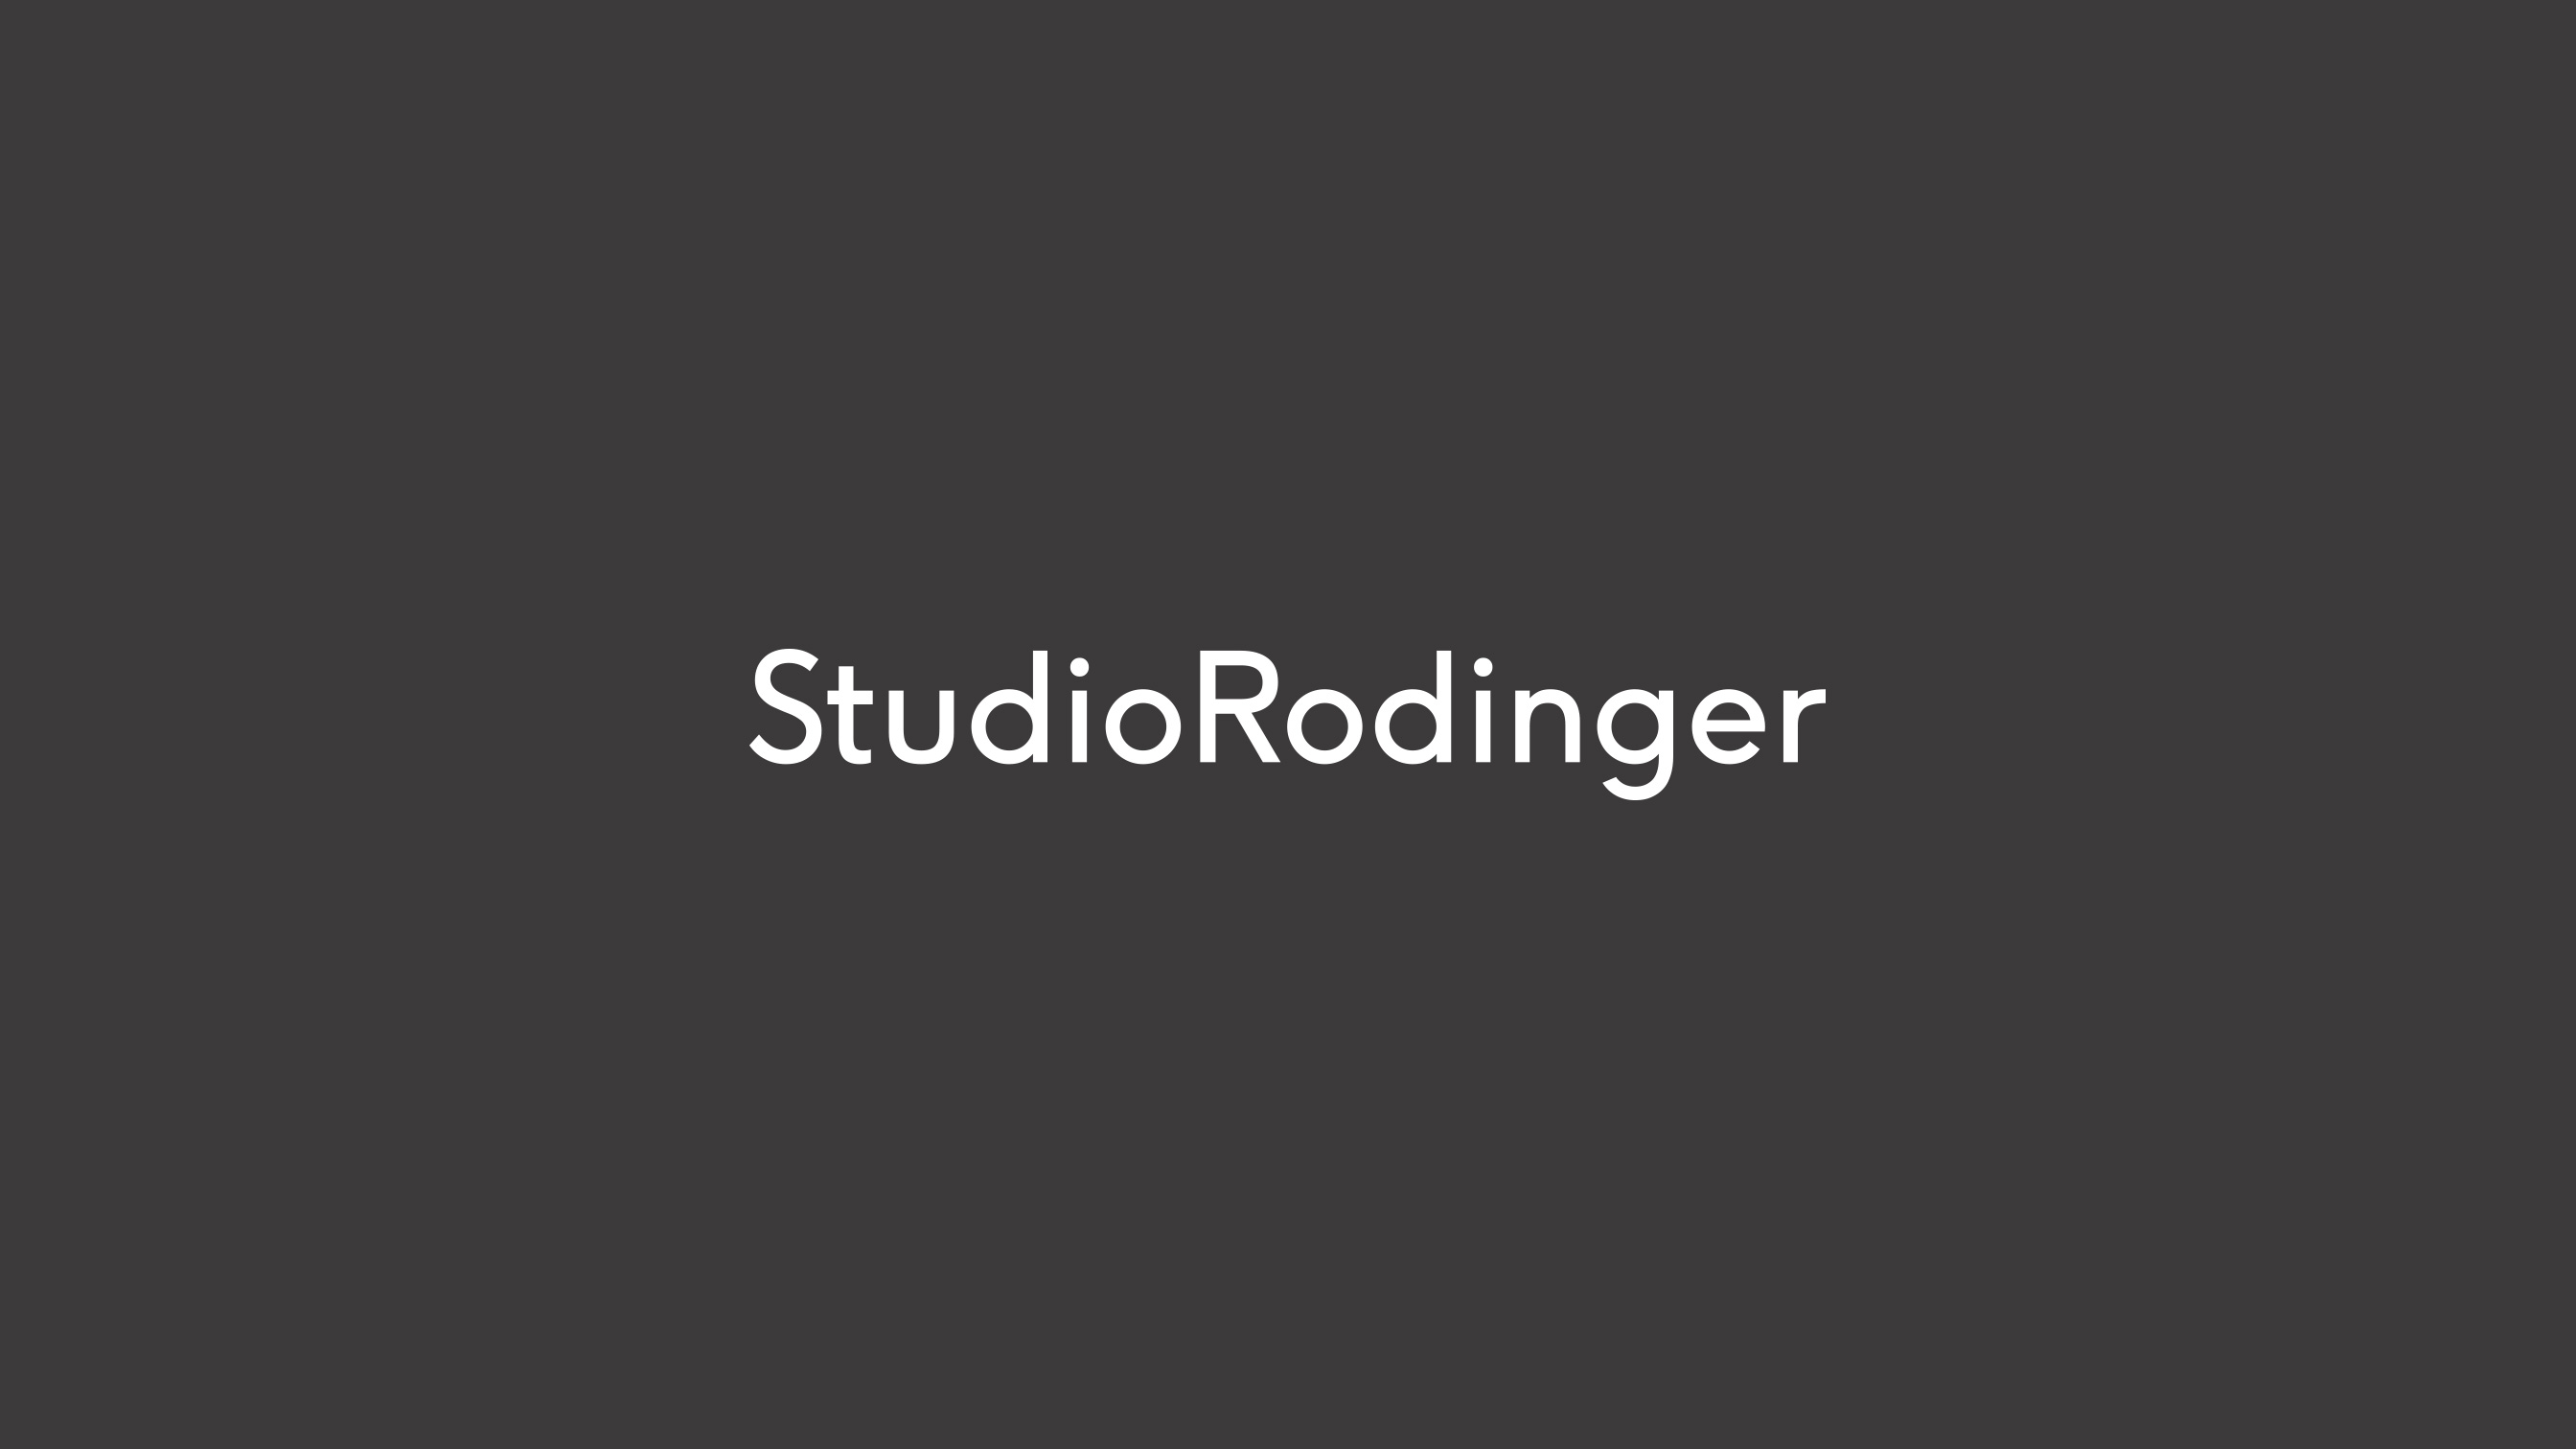 01-studio-rodinger-pikteo-webdesign-graphic-design-freelance-paris-bruxelles-londres